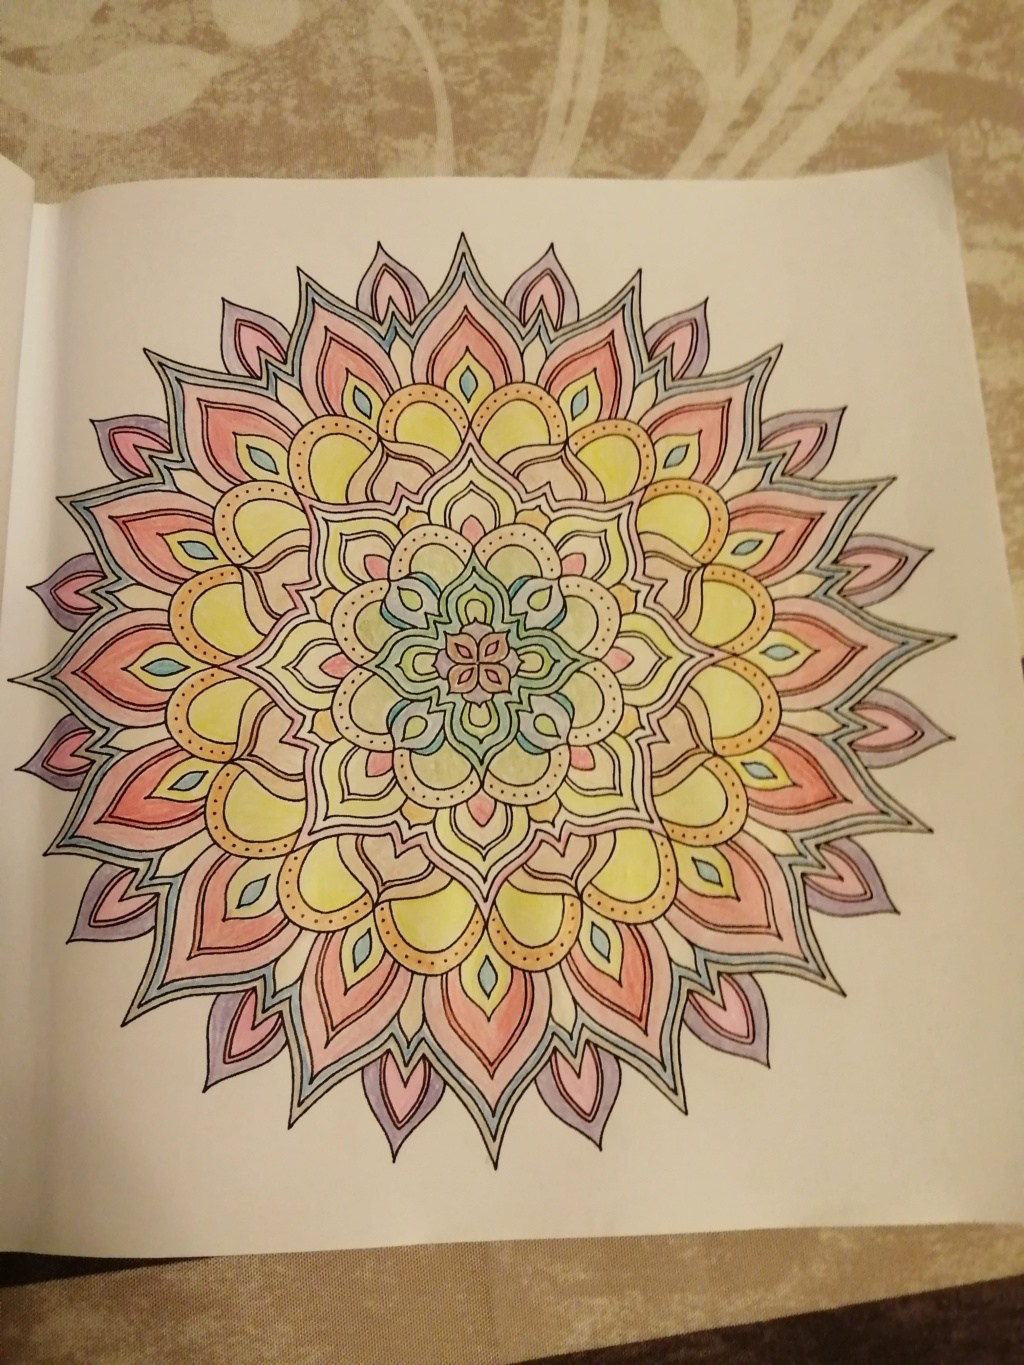 coloriage anti-stress pour adulte - Page 15 00111